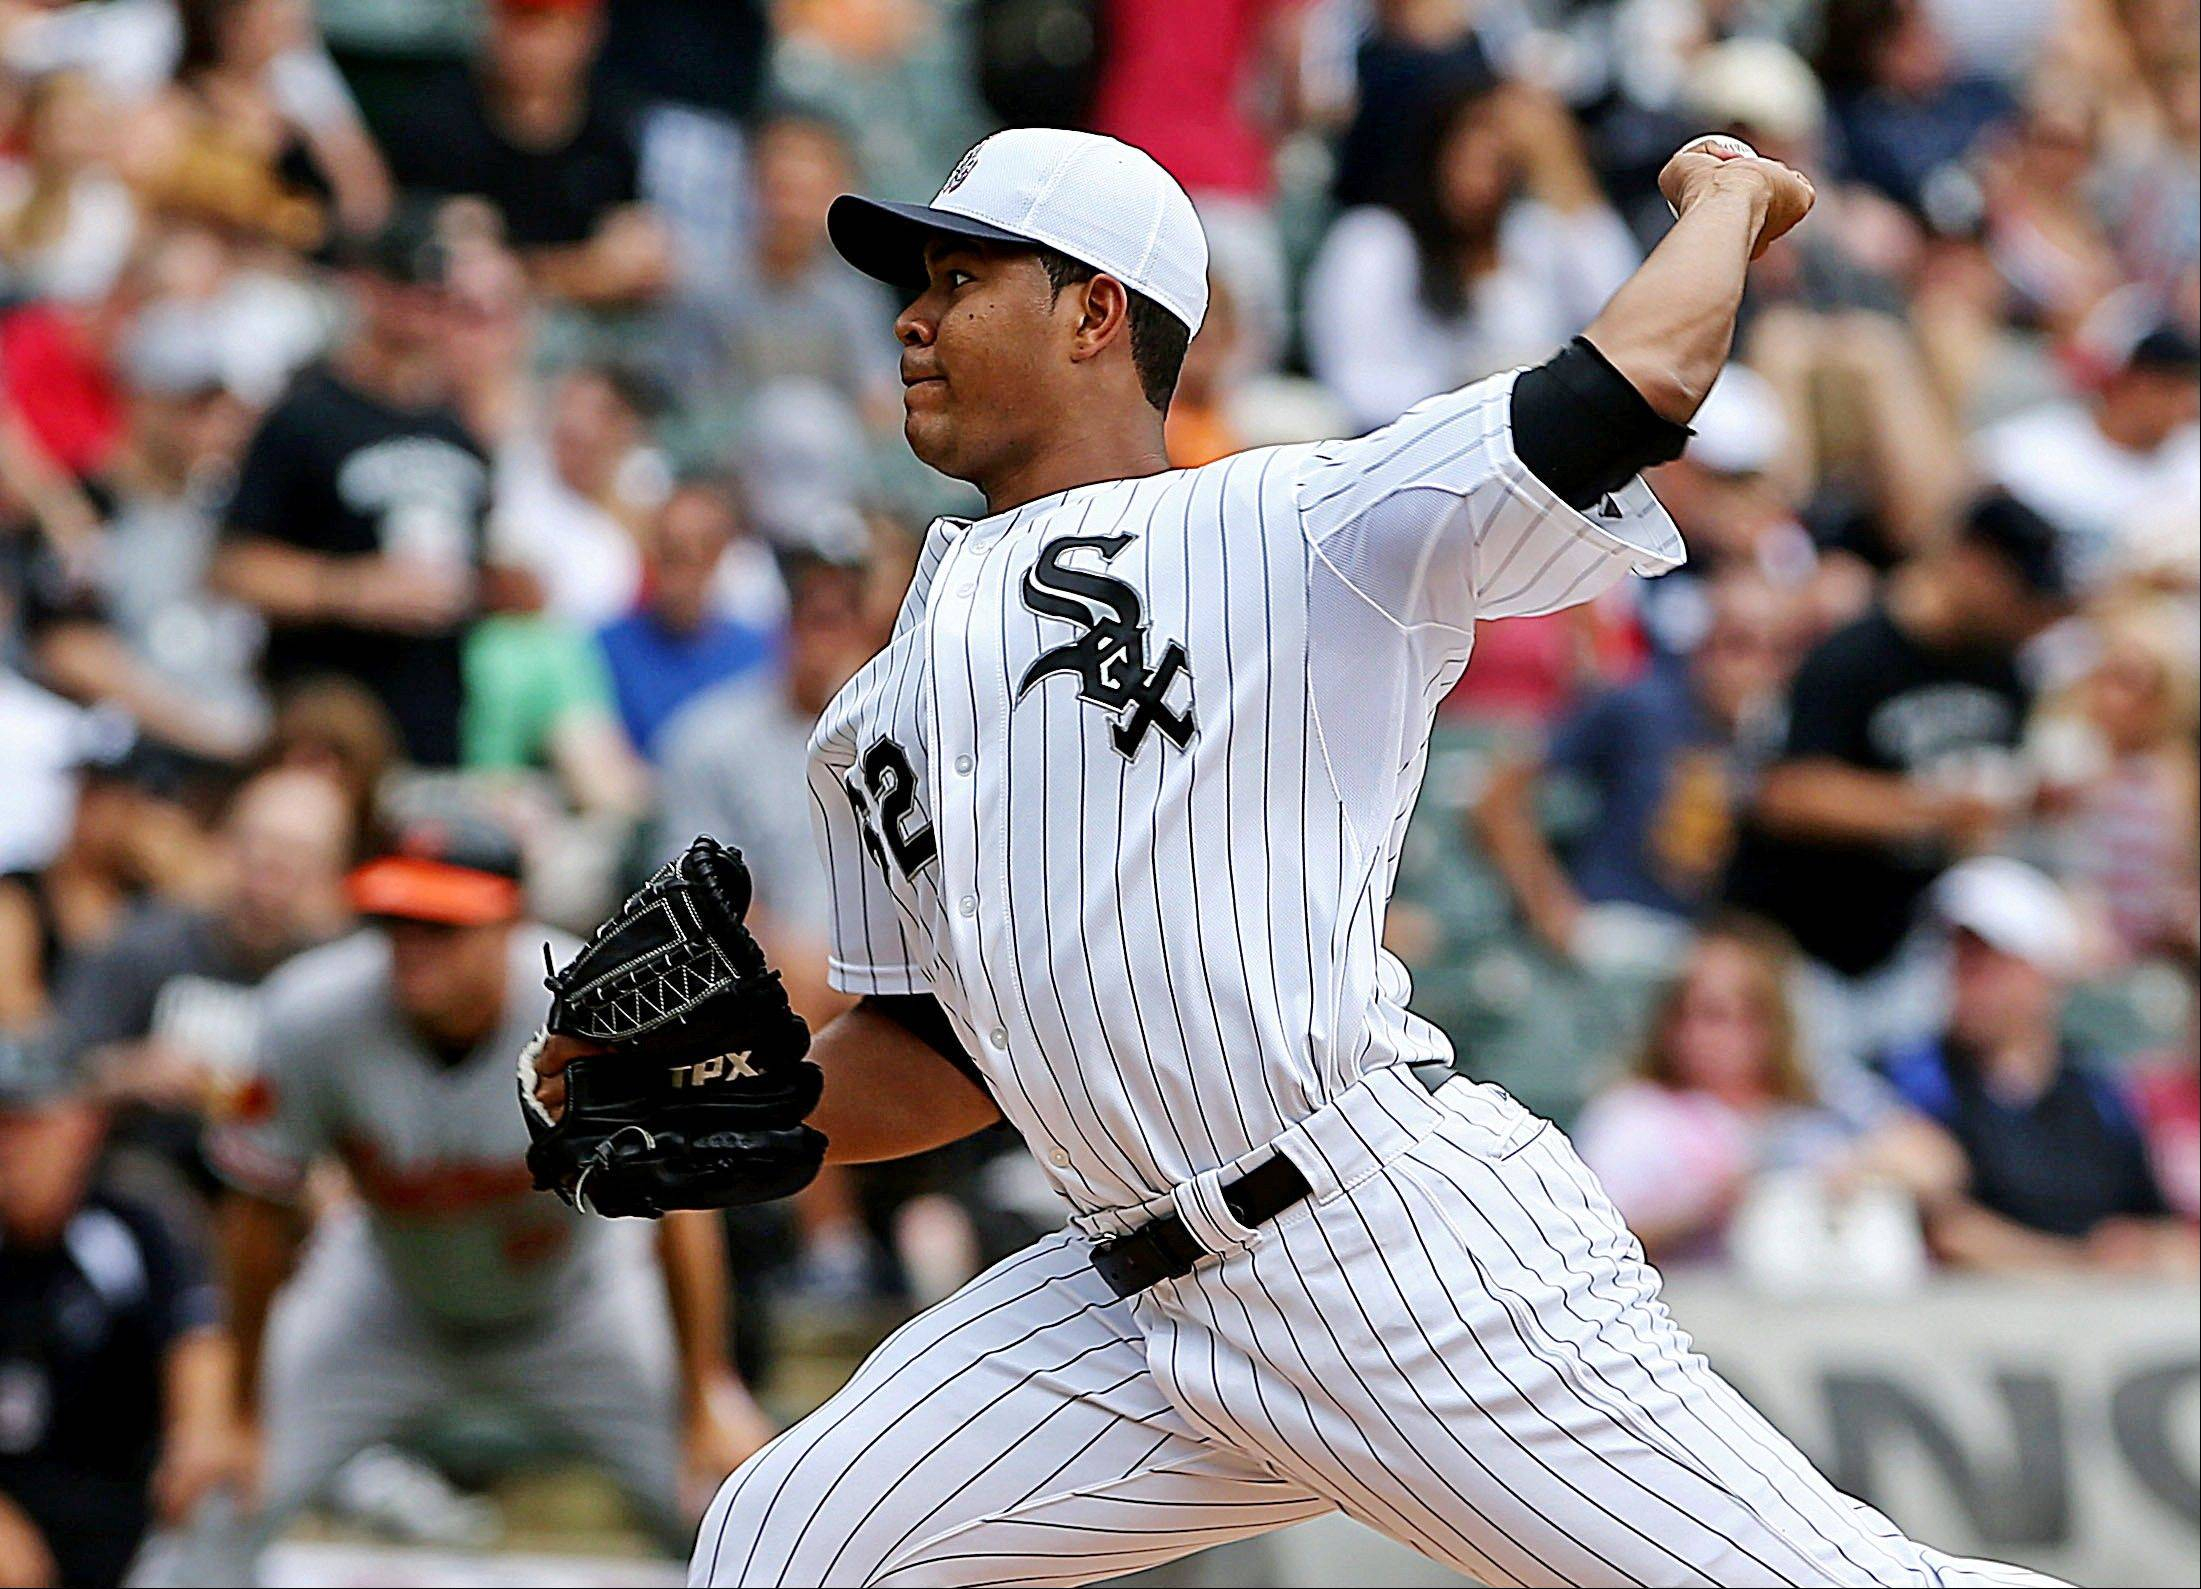 White Sox starting pitcher Jose Quintana allowed only 2 hits Thursday while striking out a career-high 11 against the Baltimore Orioles. He ended up with a no-decision.